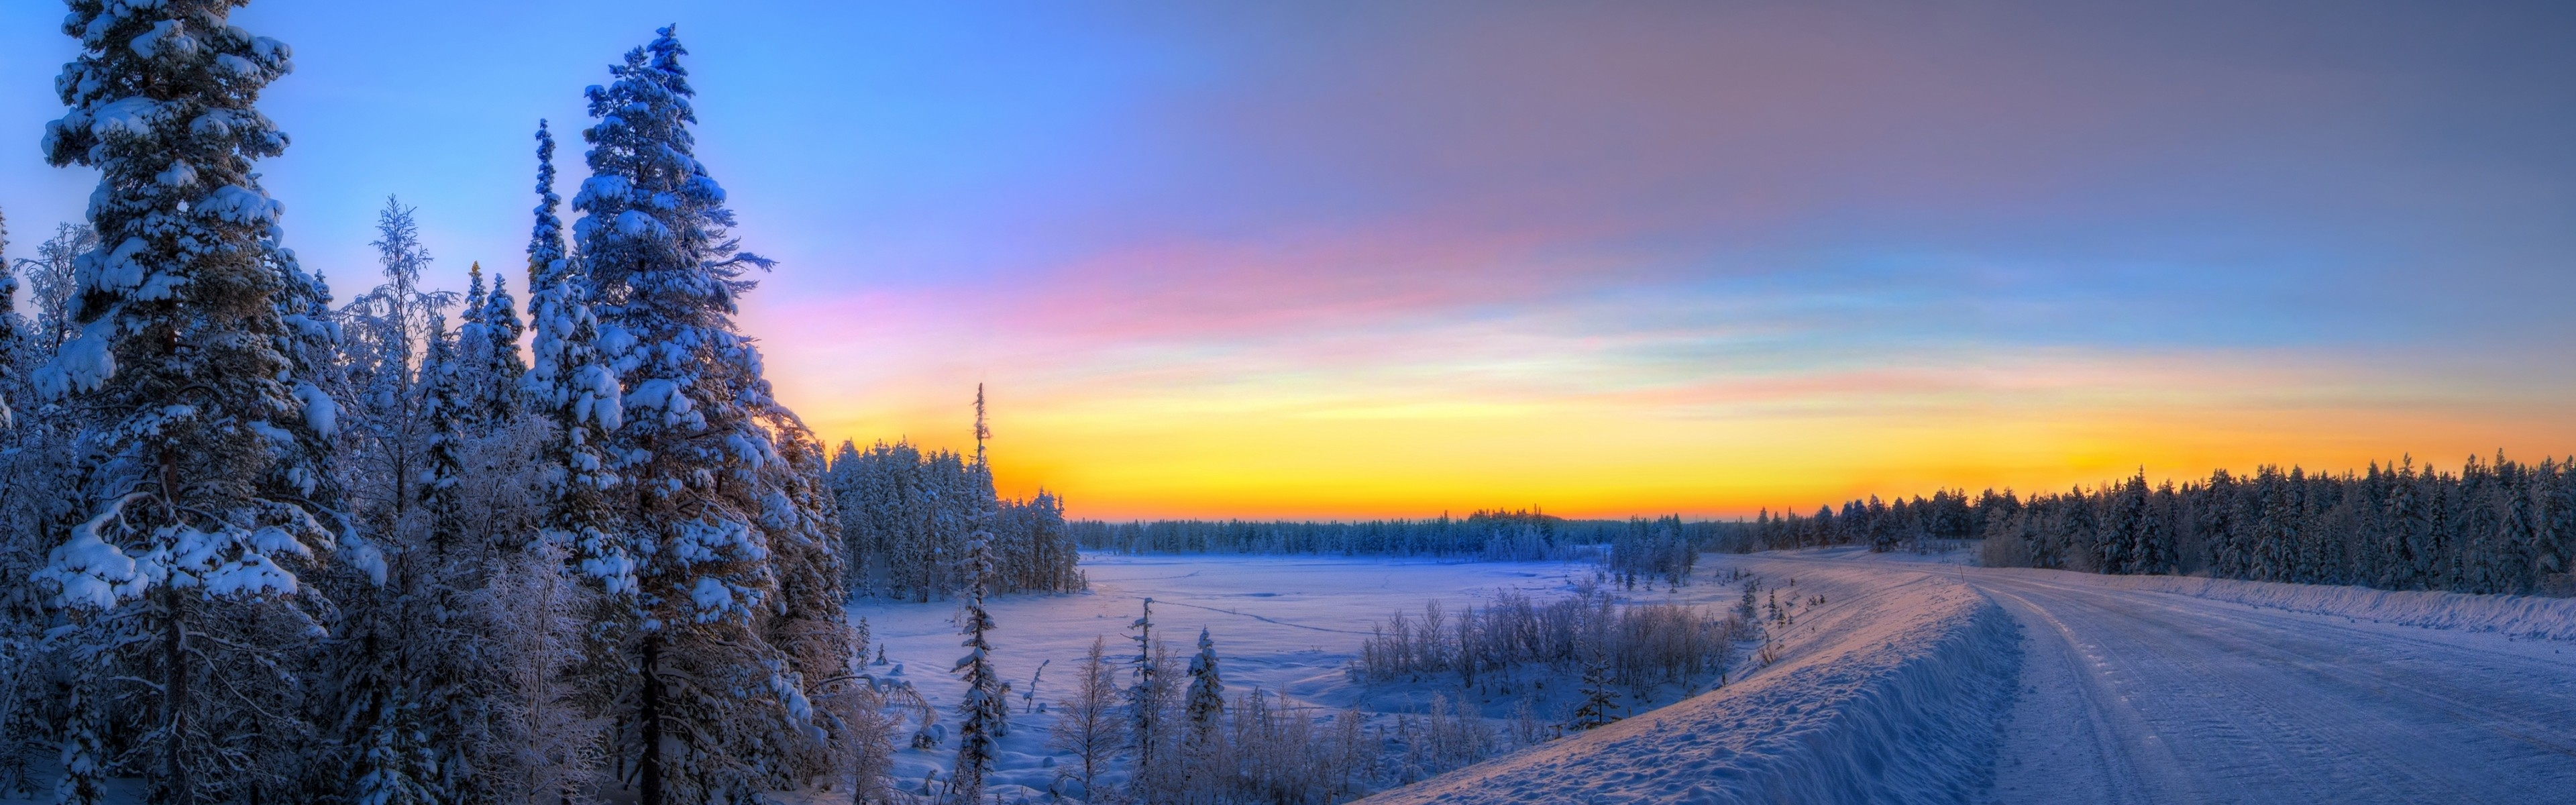 3840x1200 Preview wallpaper panorama, sunset, road, winter, landscape